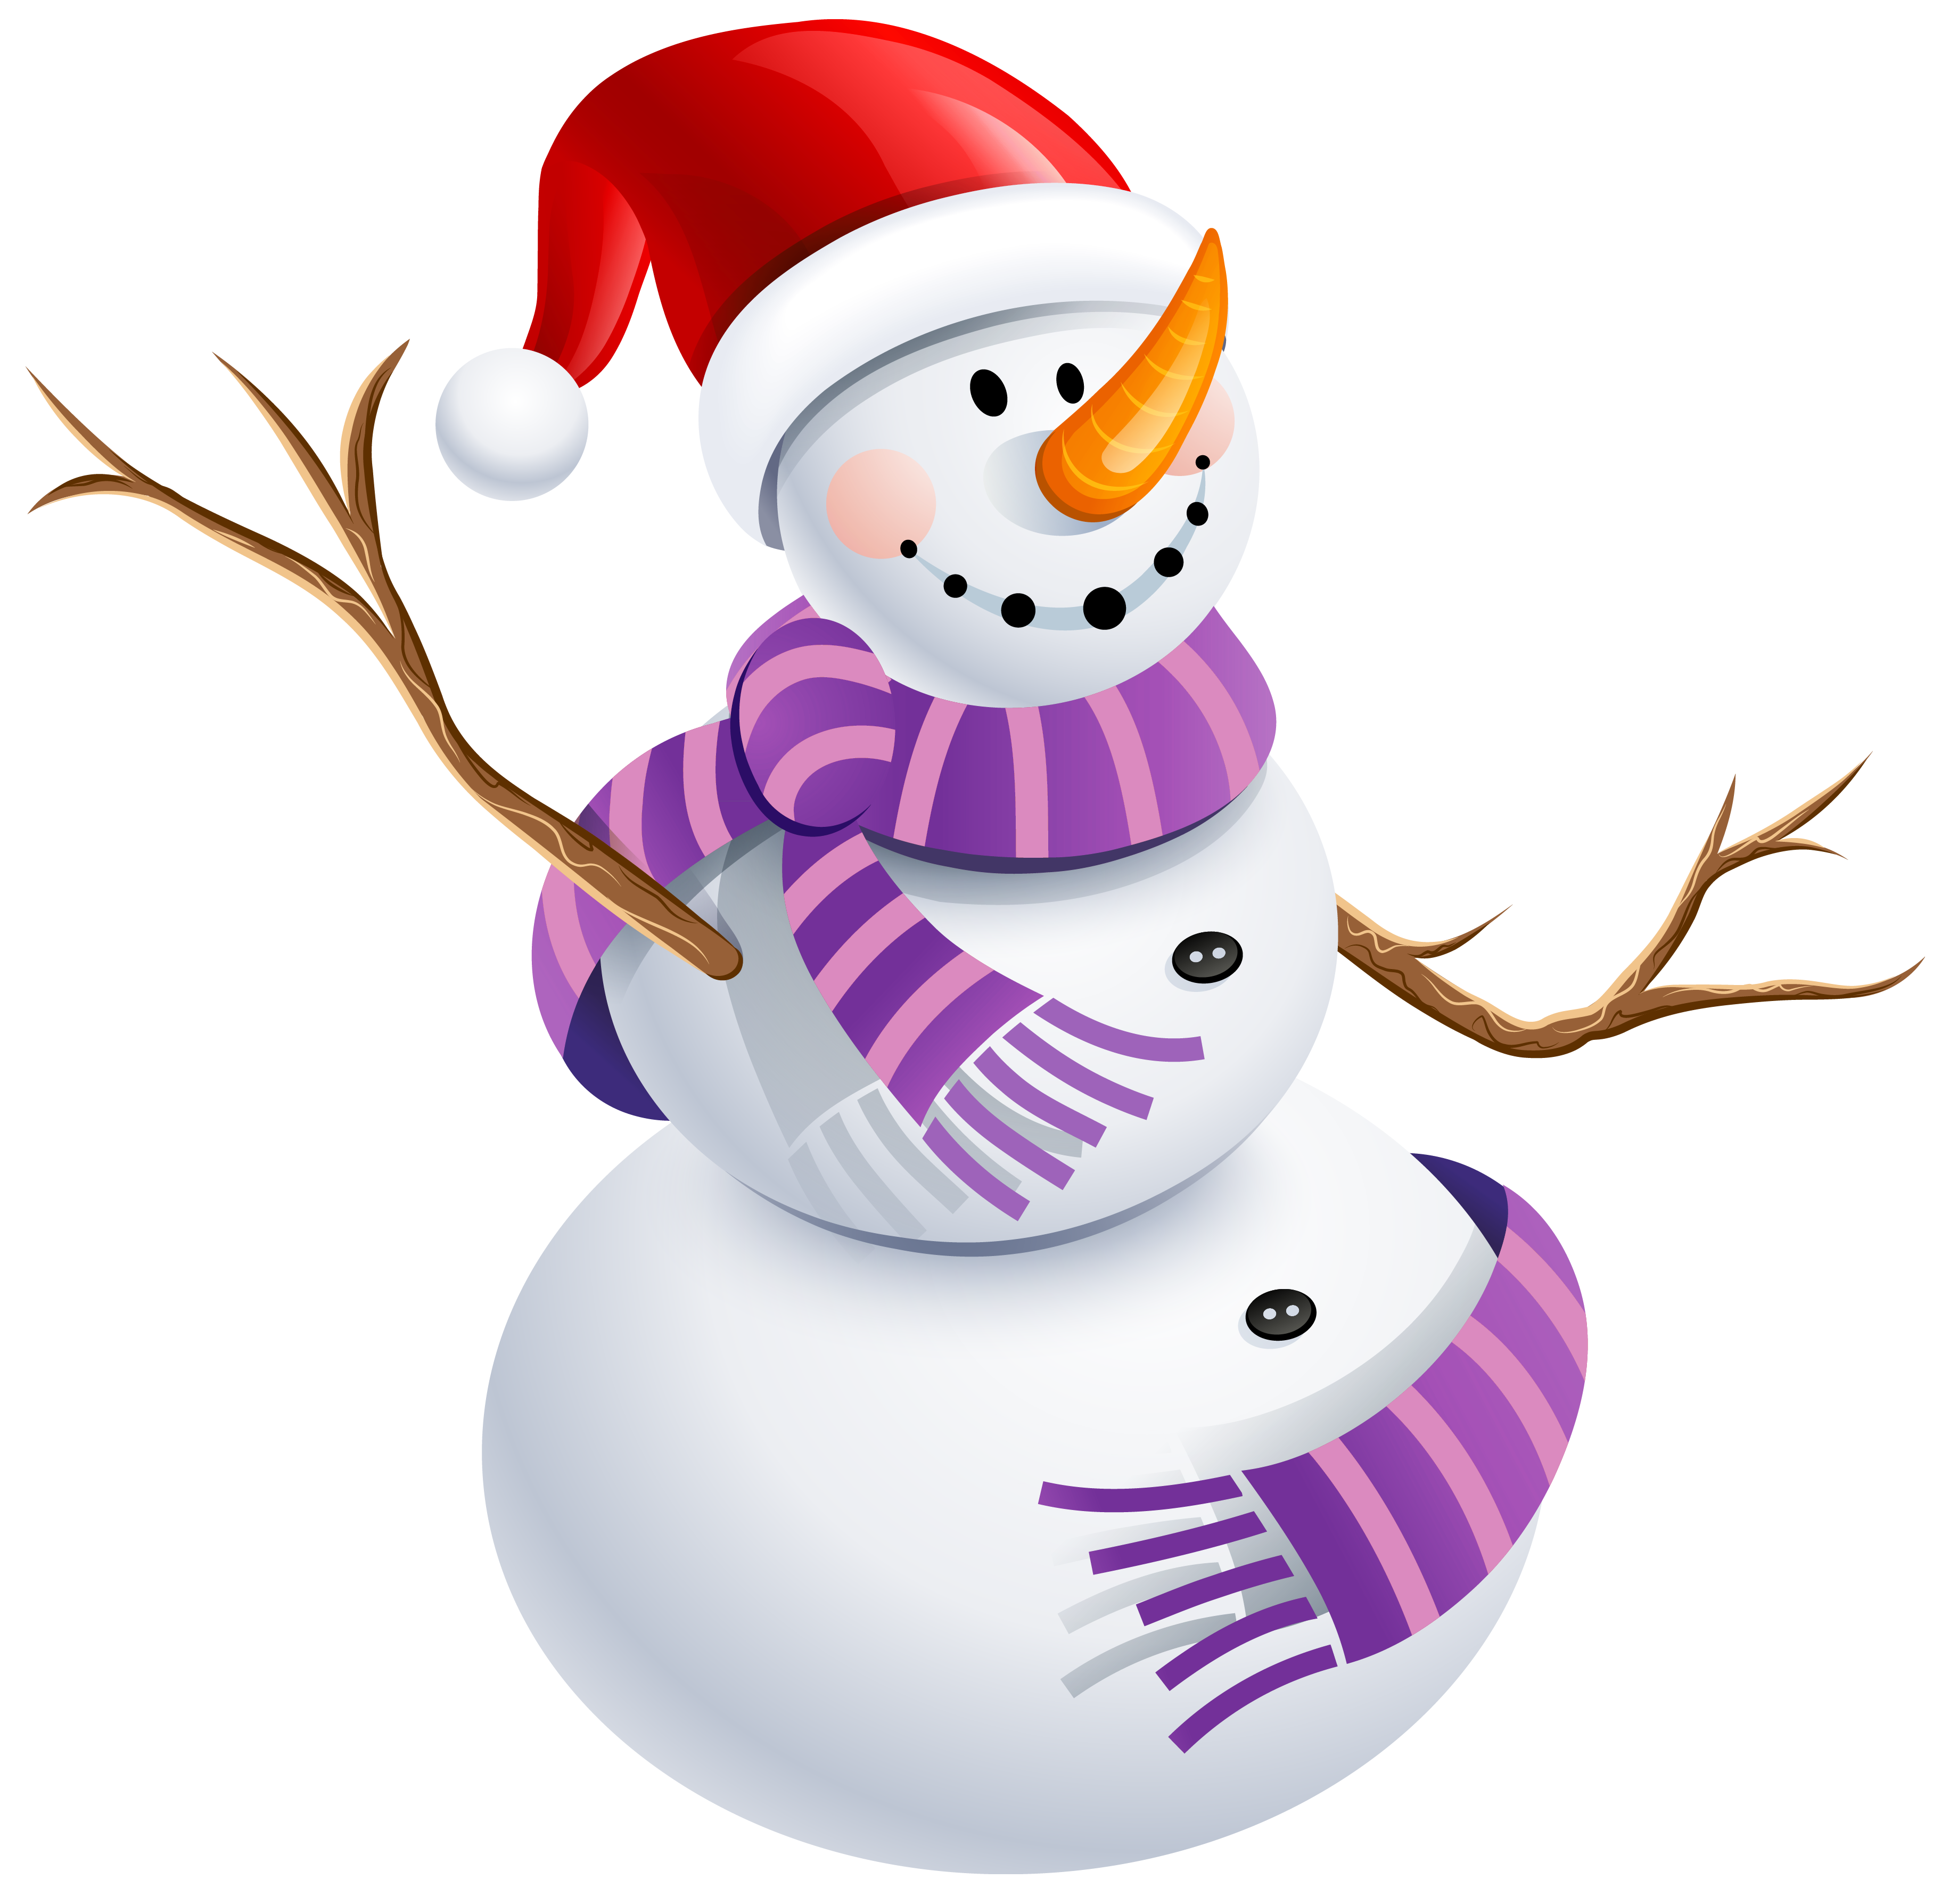 Snowman clipart png picture black and white library Snowman PNG Transparent Images | PNG All picture black and white library